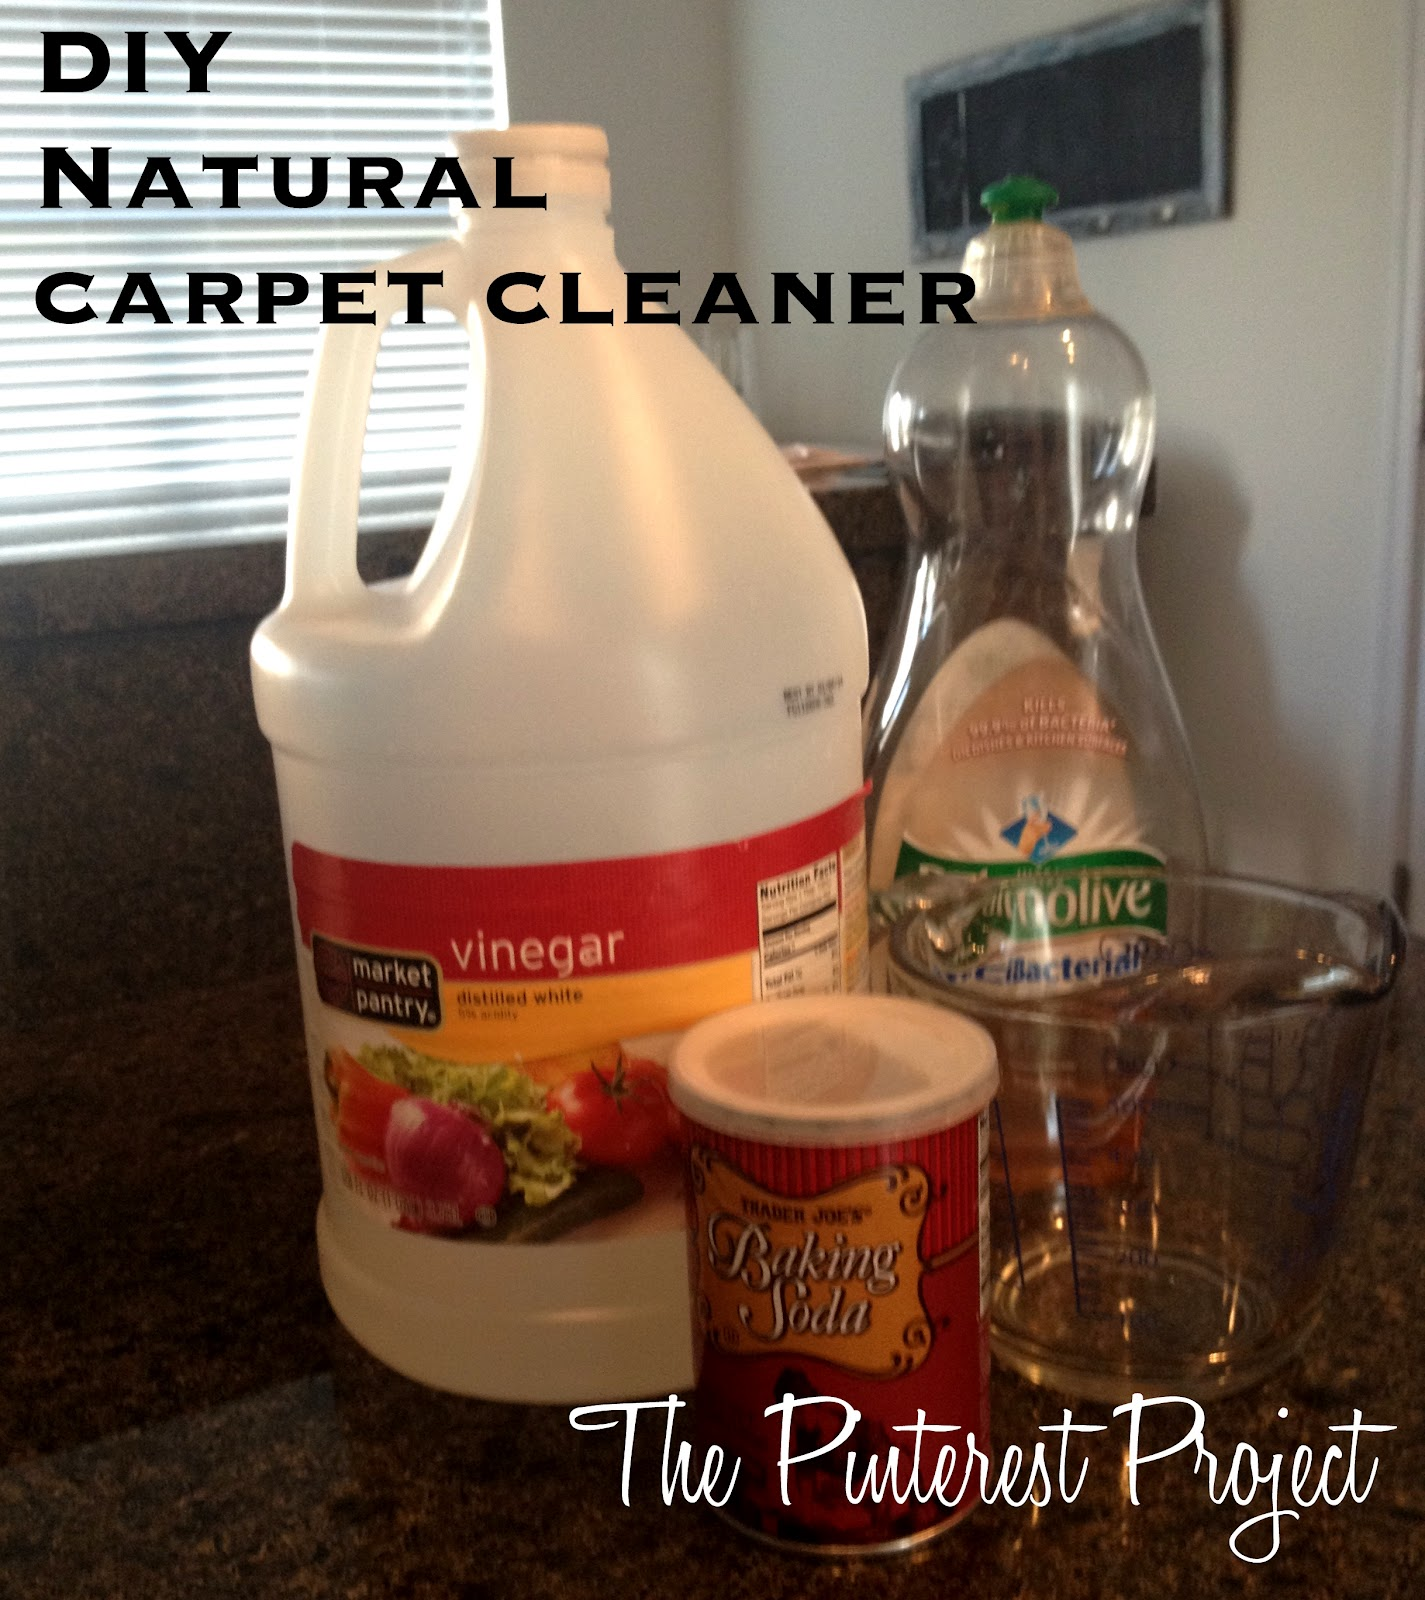 Diy Fabric Upholstery Cleaning: DIY Natural Carpet Cleaner